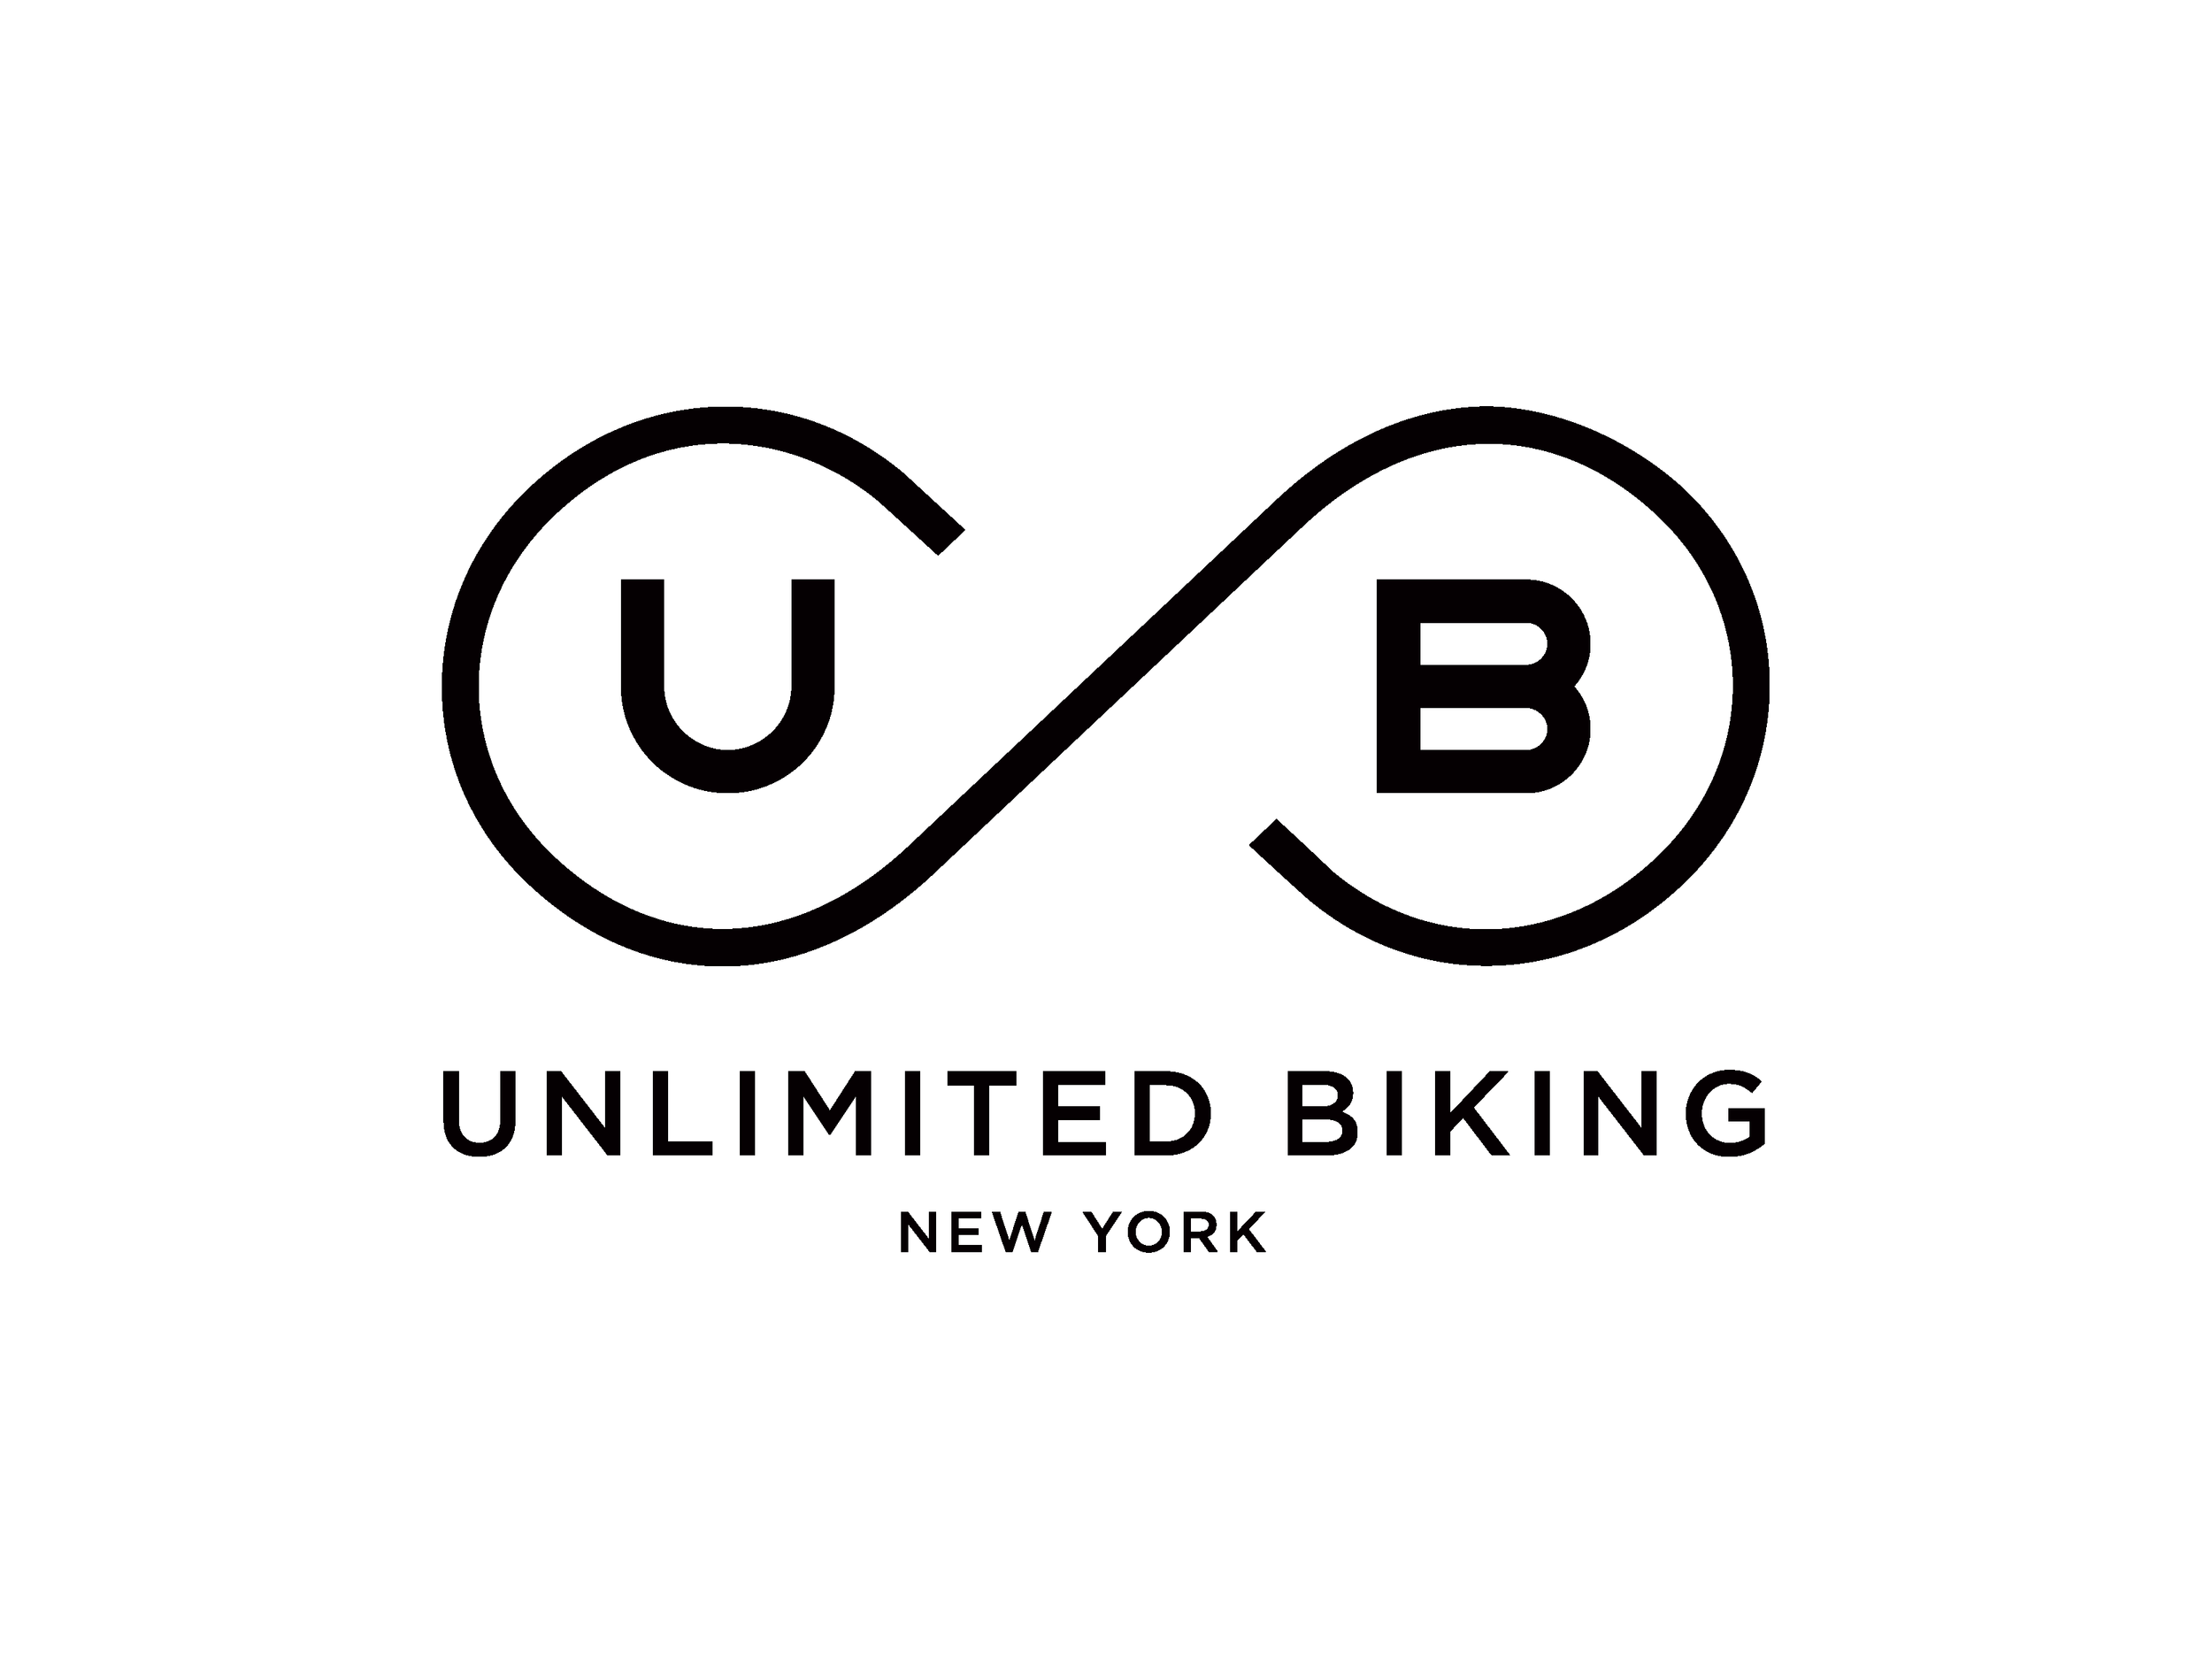 Bike Rentals Available! - We are happy to announce we partnered with Unlimited Biking to offer top quality cannondale bikes and helmets . Book your bike in advance here.Unlimited biking will be bringing the bikes for you so you pick up on the morning of the ride at Sakura Park, you can also drop it off with their team at the end of the ride ! how convenient!